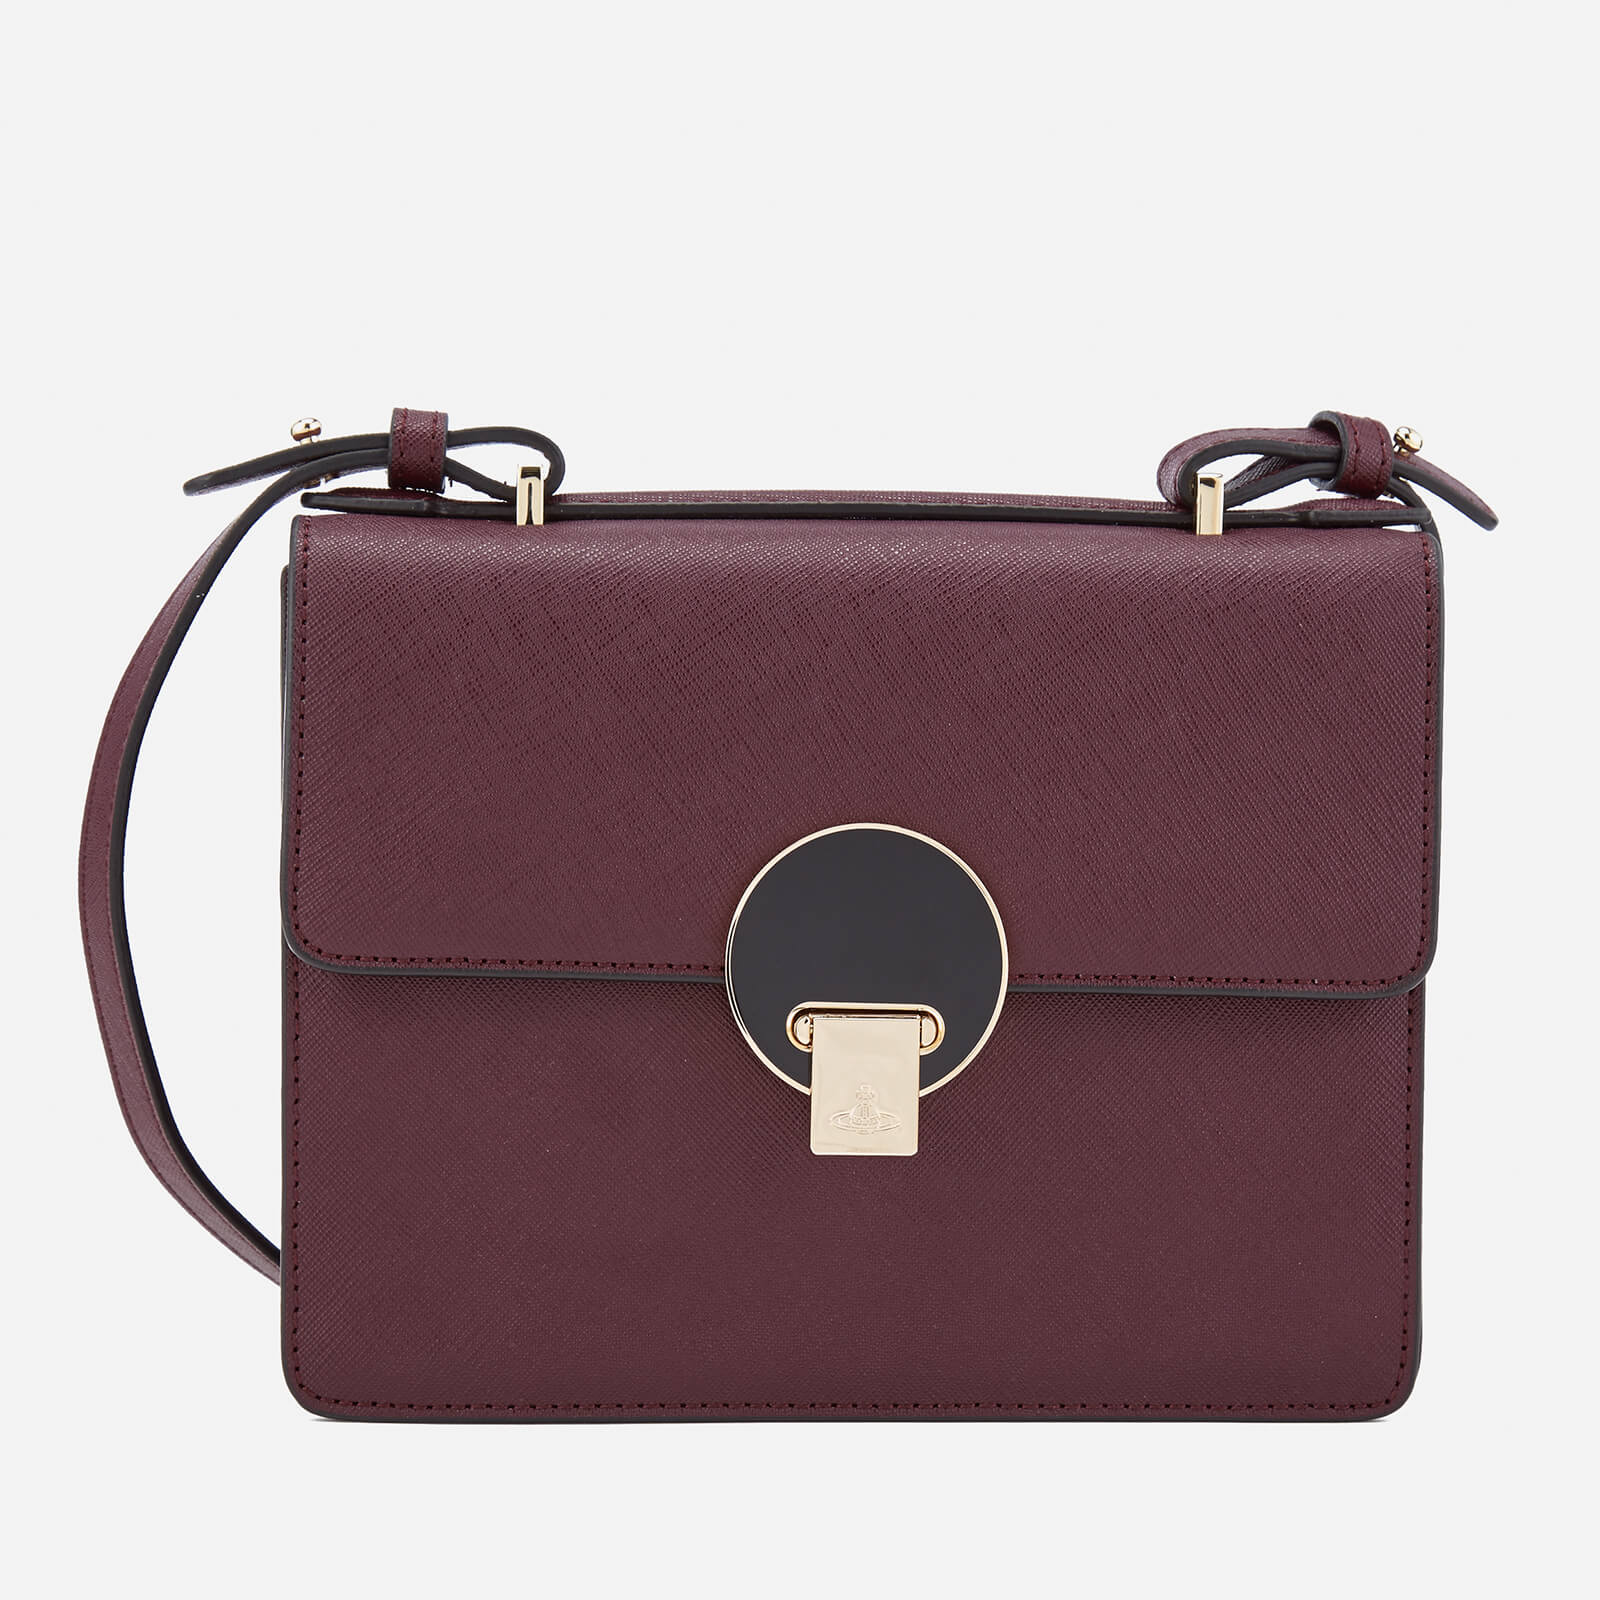 e3eb7c8f0e5b Vivienne Westwood Women s Opio Saffiano Small Shoulder Bag - Bordeaux -  Free UK Delivery over £50